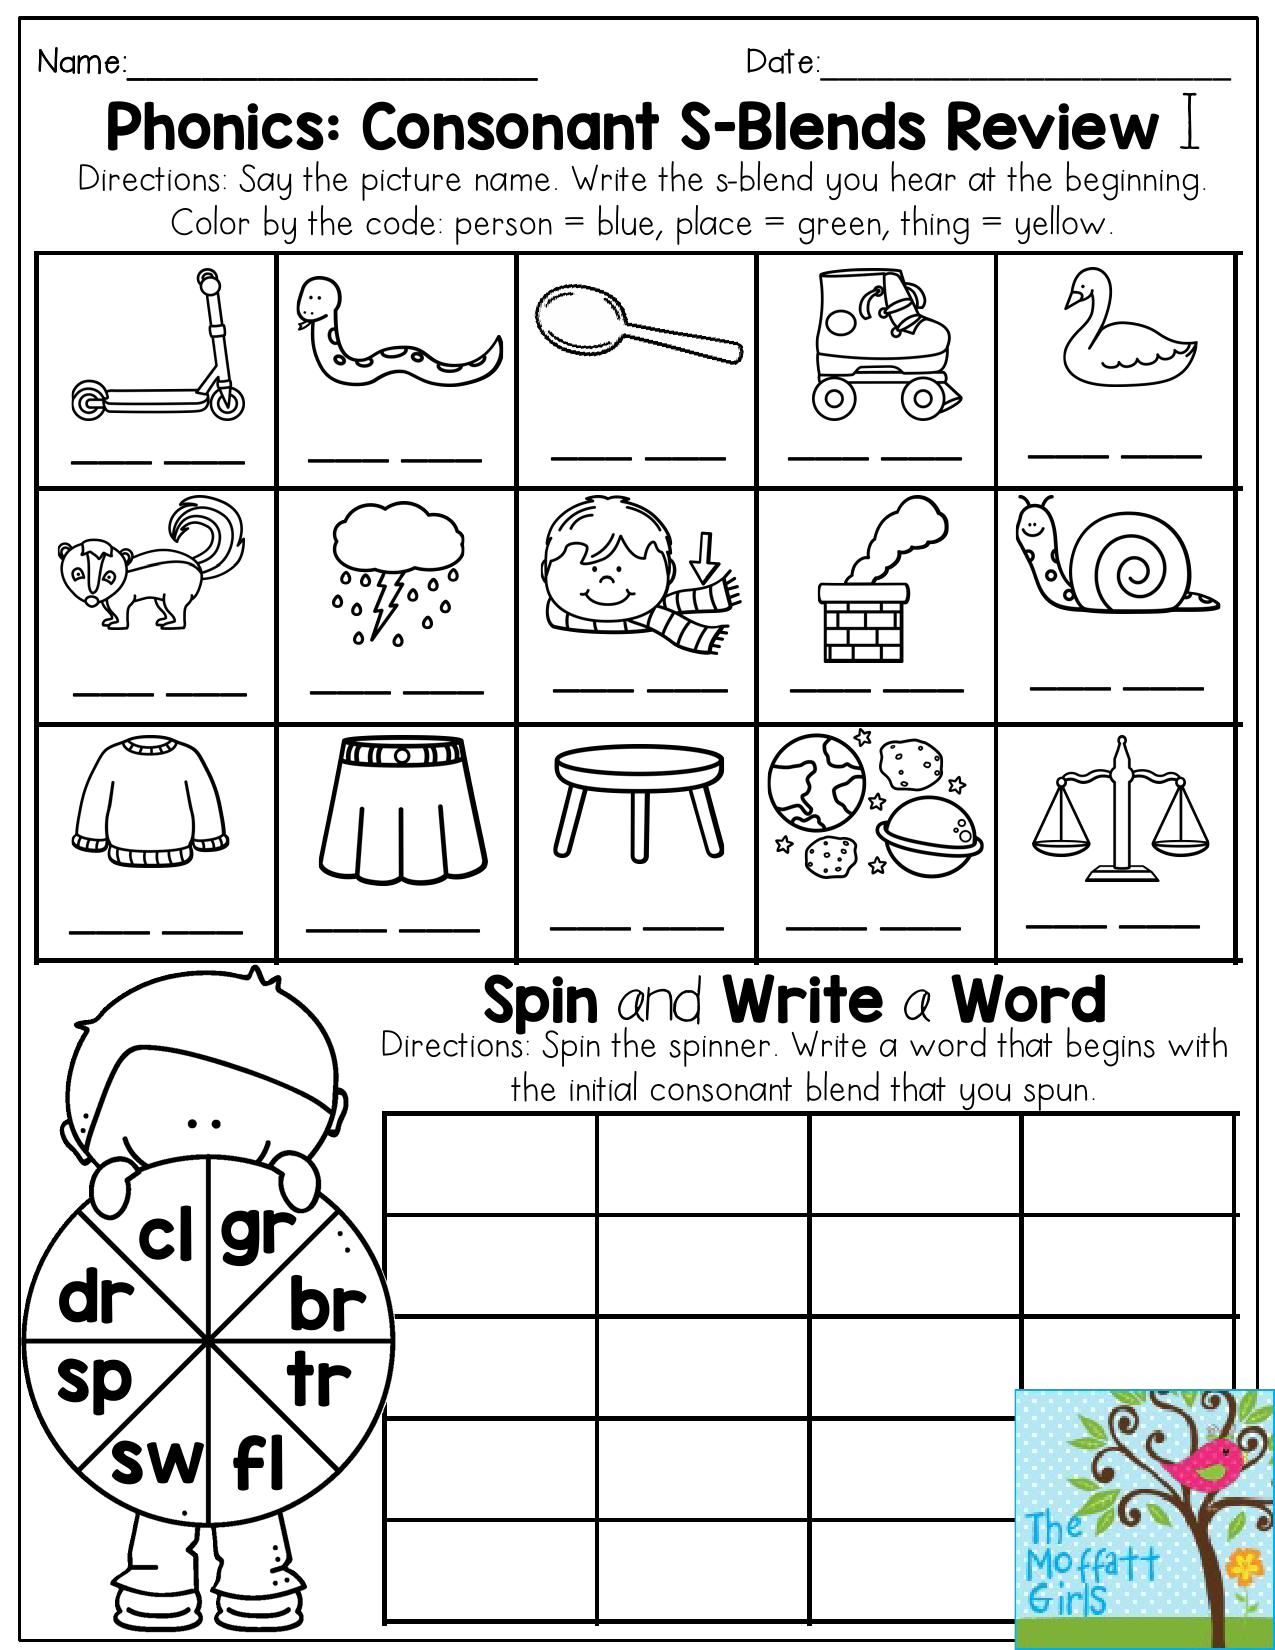 Worksheets S Blend Worksheets phonics consonant s blends review write the blend that you hear at beginning of word then spin to a th